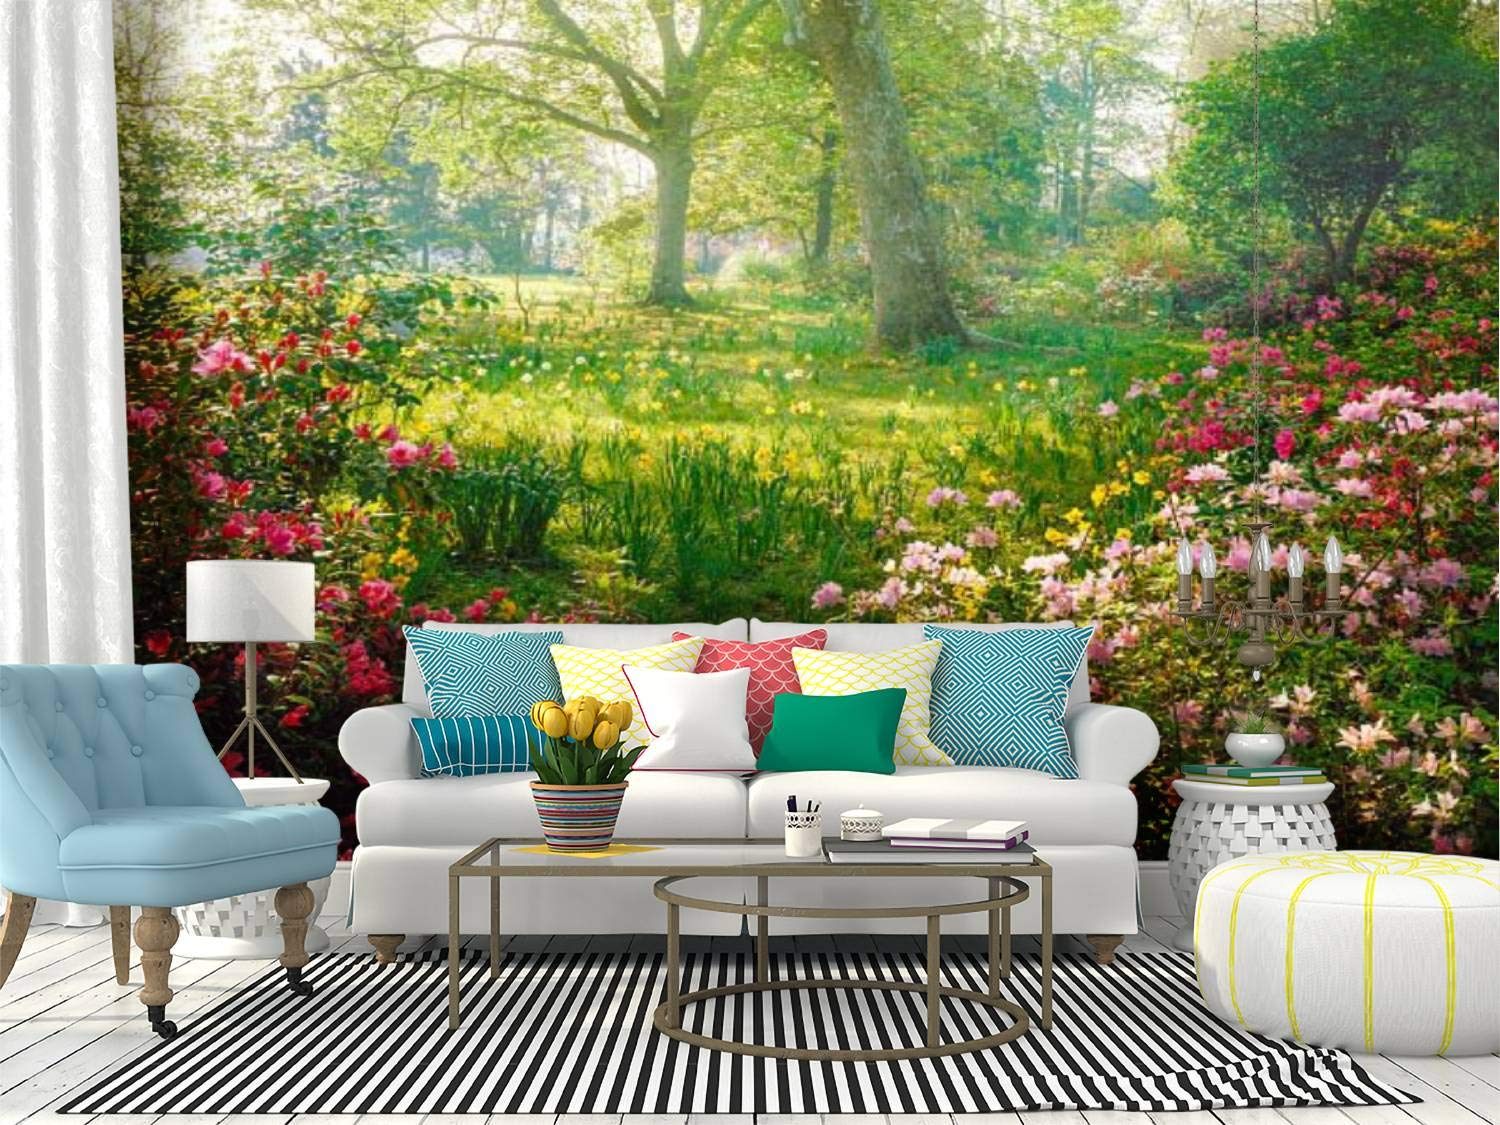 Self Adhesive Wallpaper Roll Paper bright hazy sunlight through azalea and daffodil garden summer hazes Removable Peel and Stick Wallpaper Decorative Wall Mural Posters Home Covering Interior Film